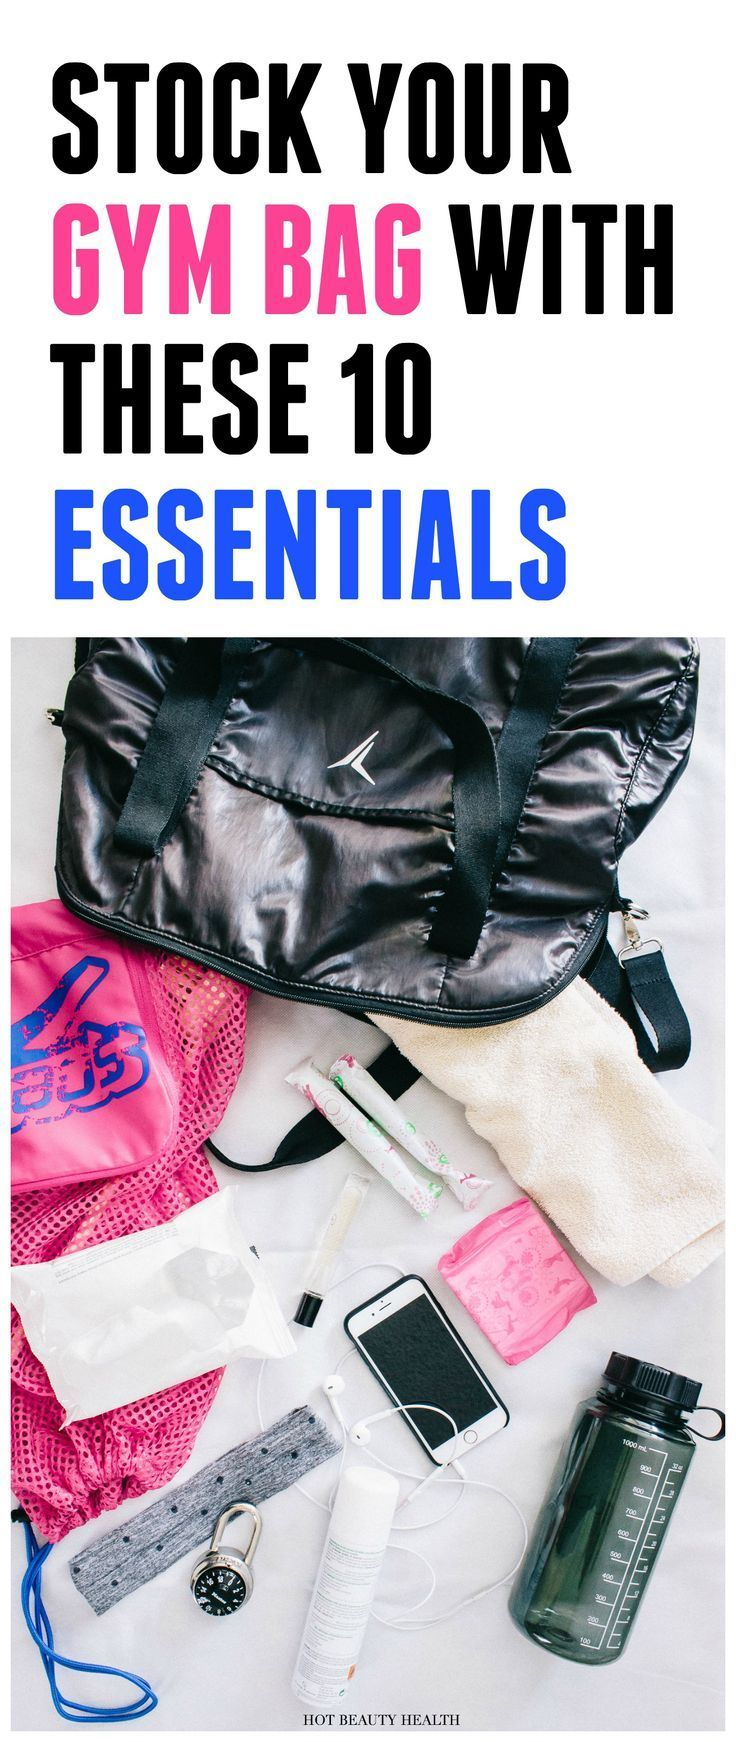 f6b37ead2302b2 A list of what I keep in my gym bag and the kind of workout essentials  (like towels, clothes, women products, etc) I always have with me.